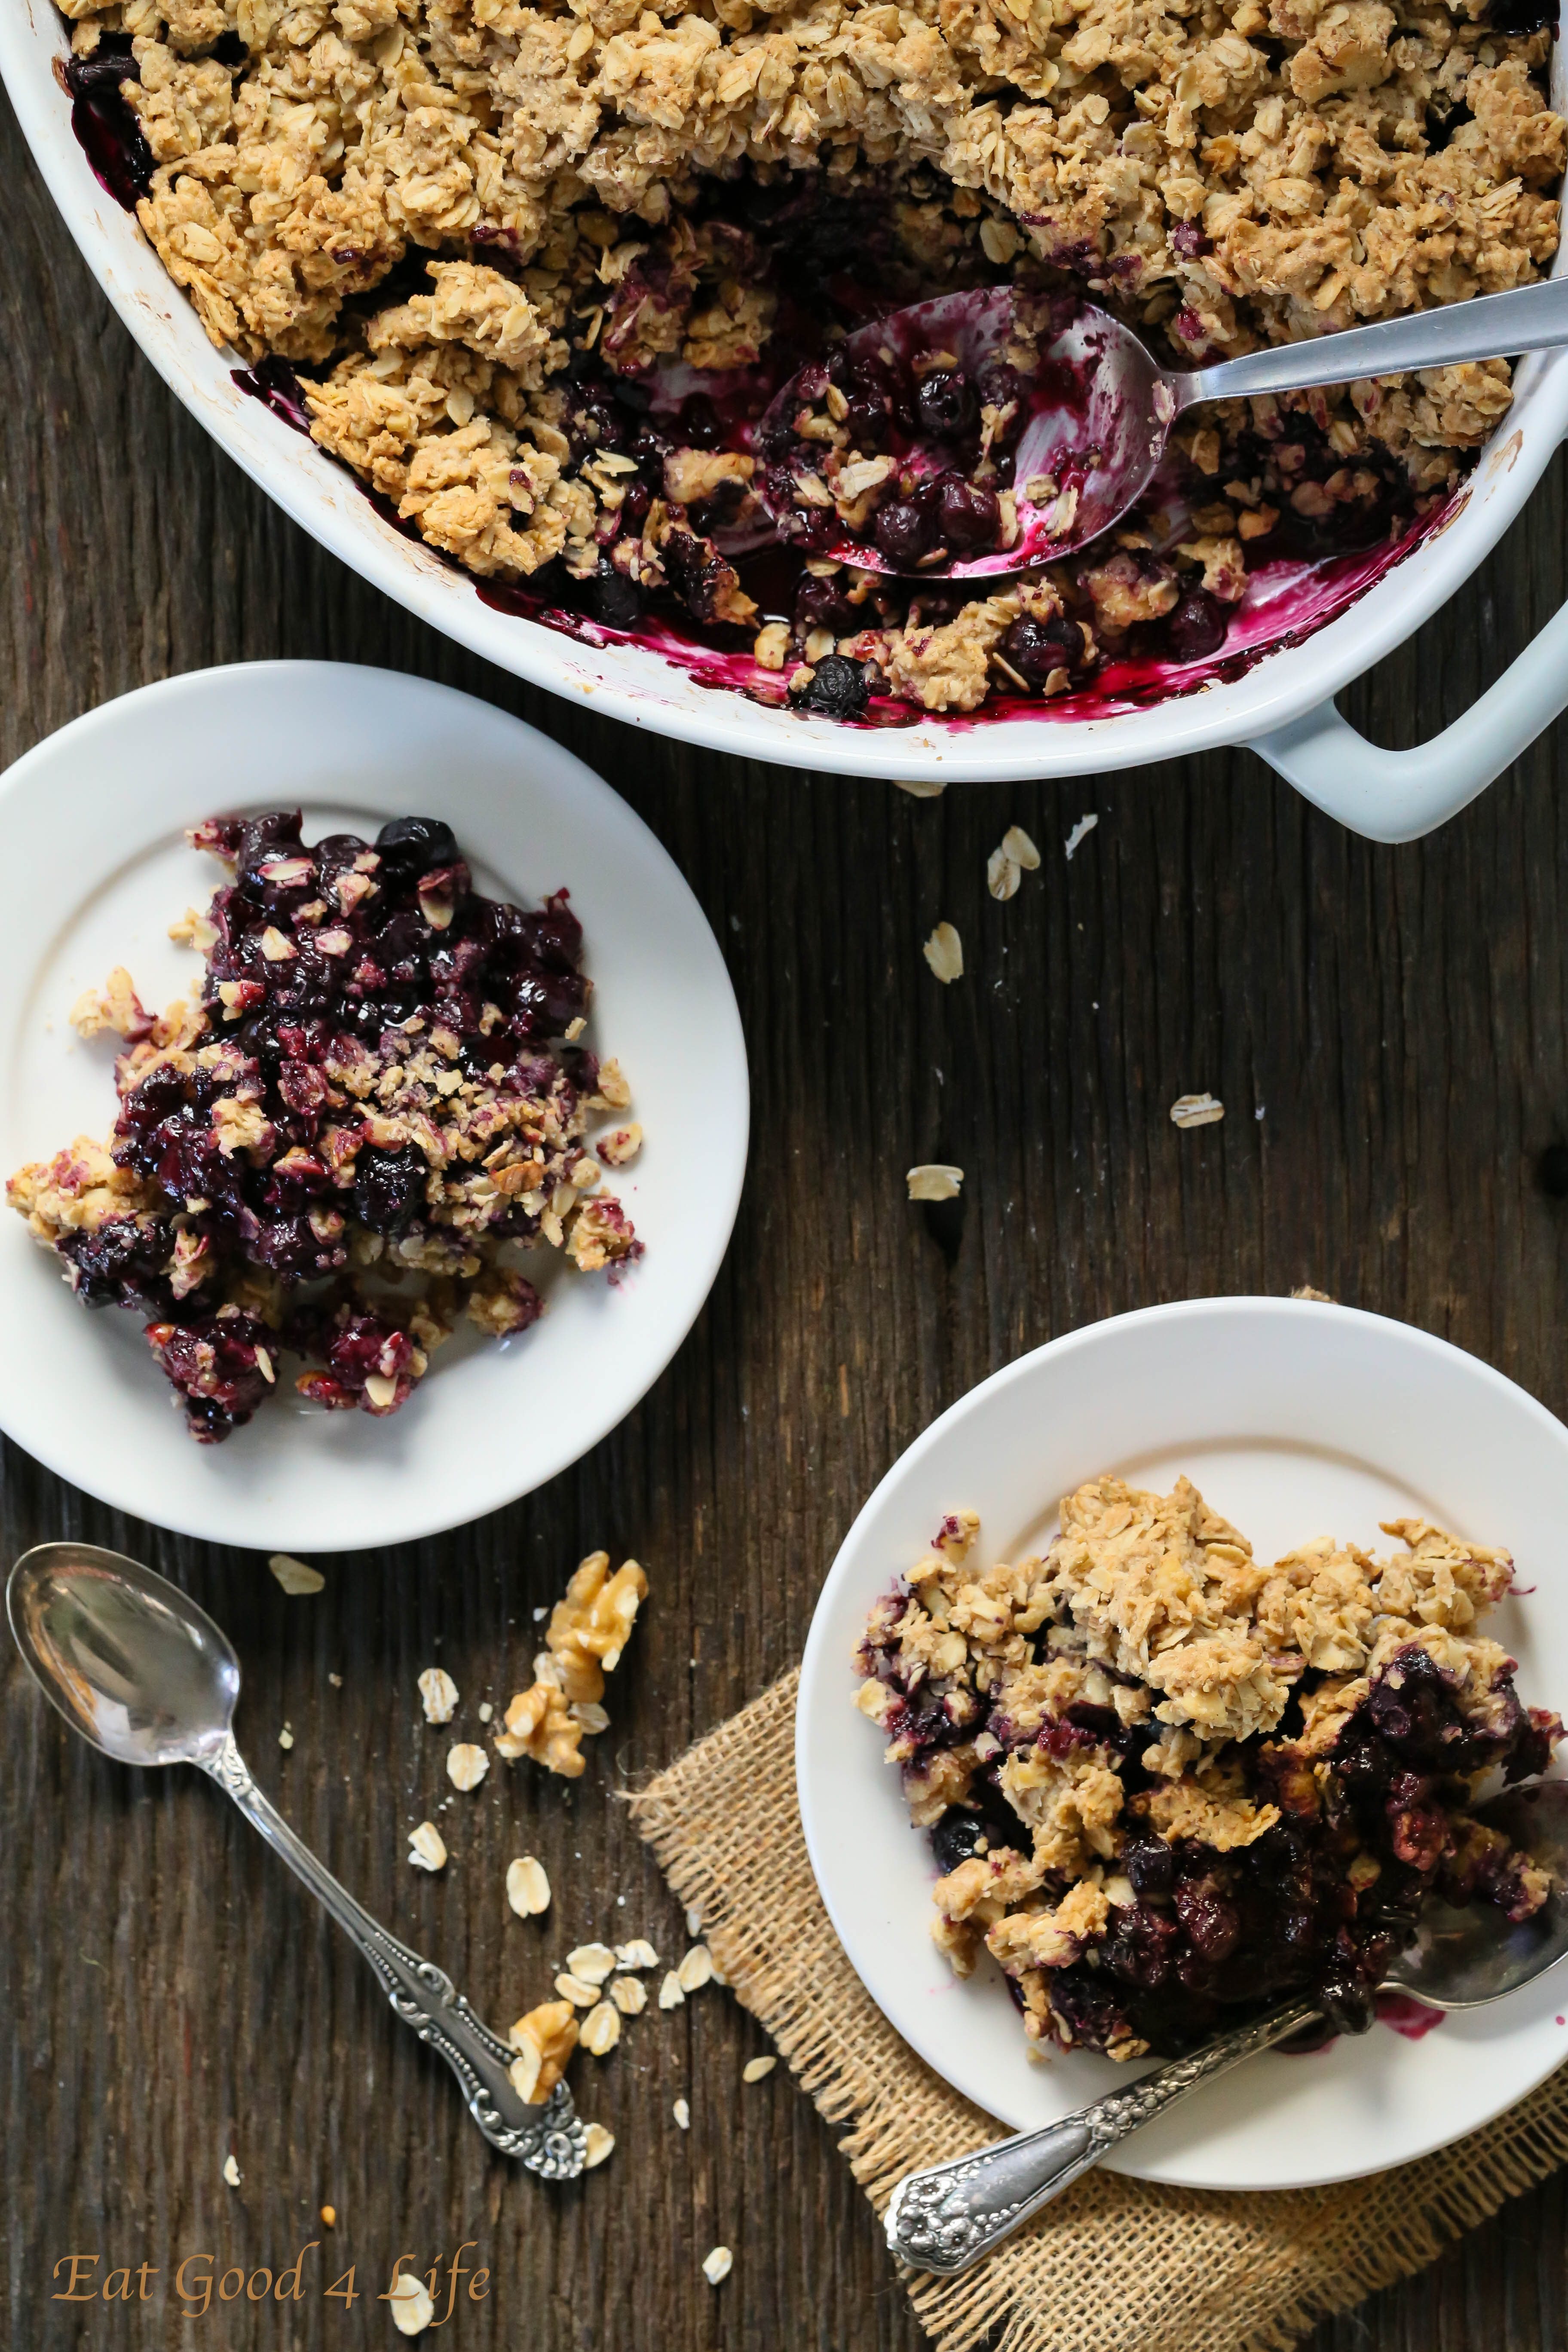 Sugar and Spice Blueberry Crisp recommend